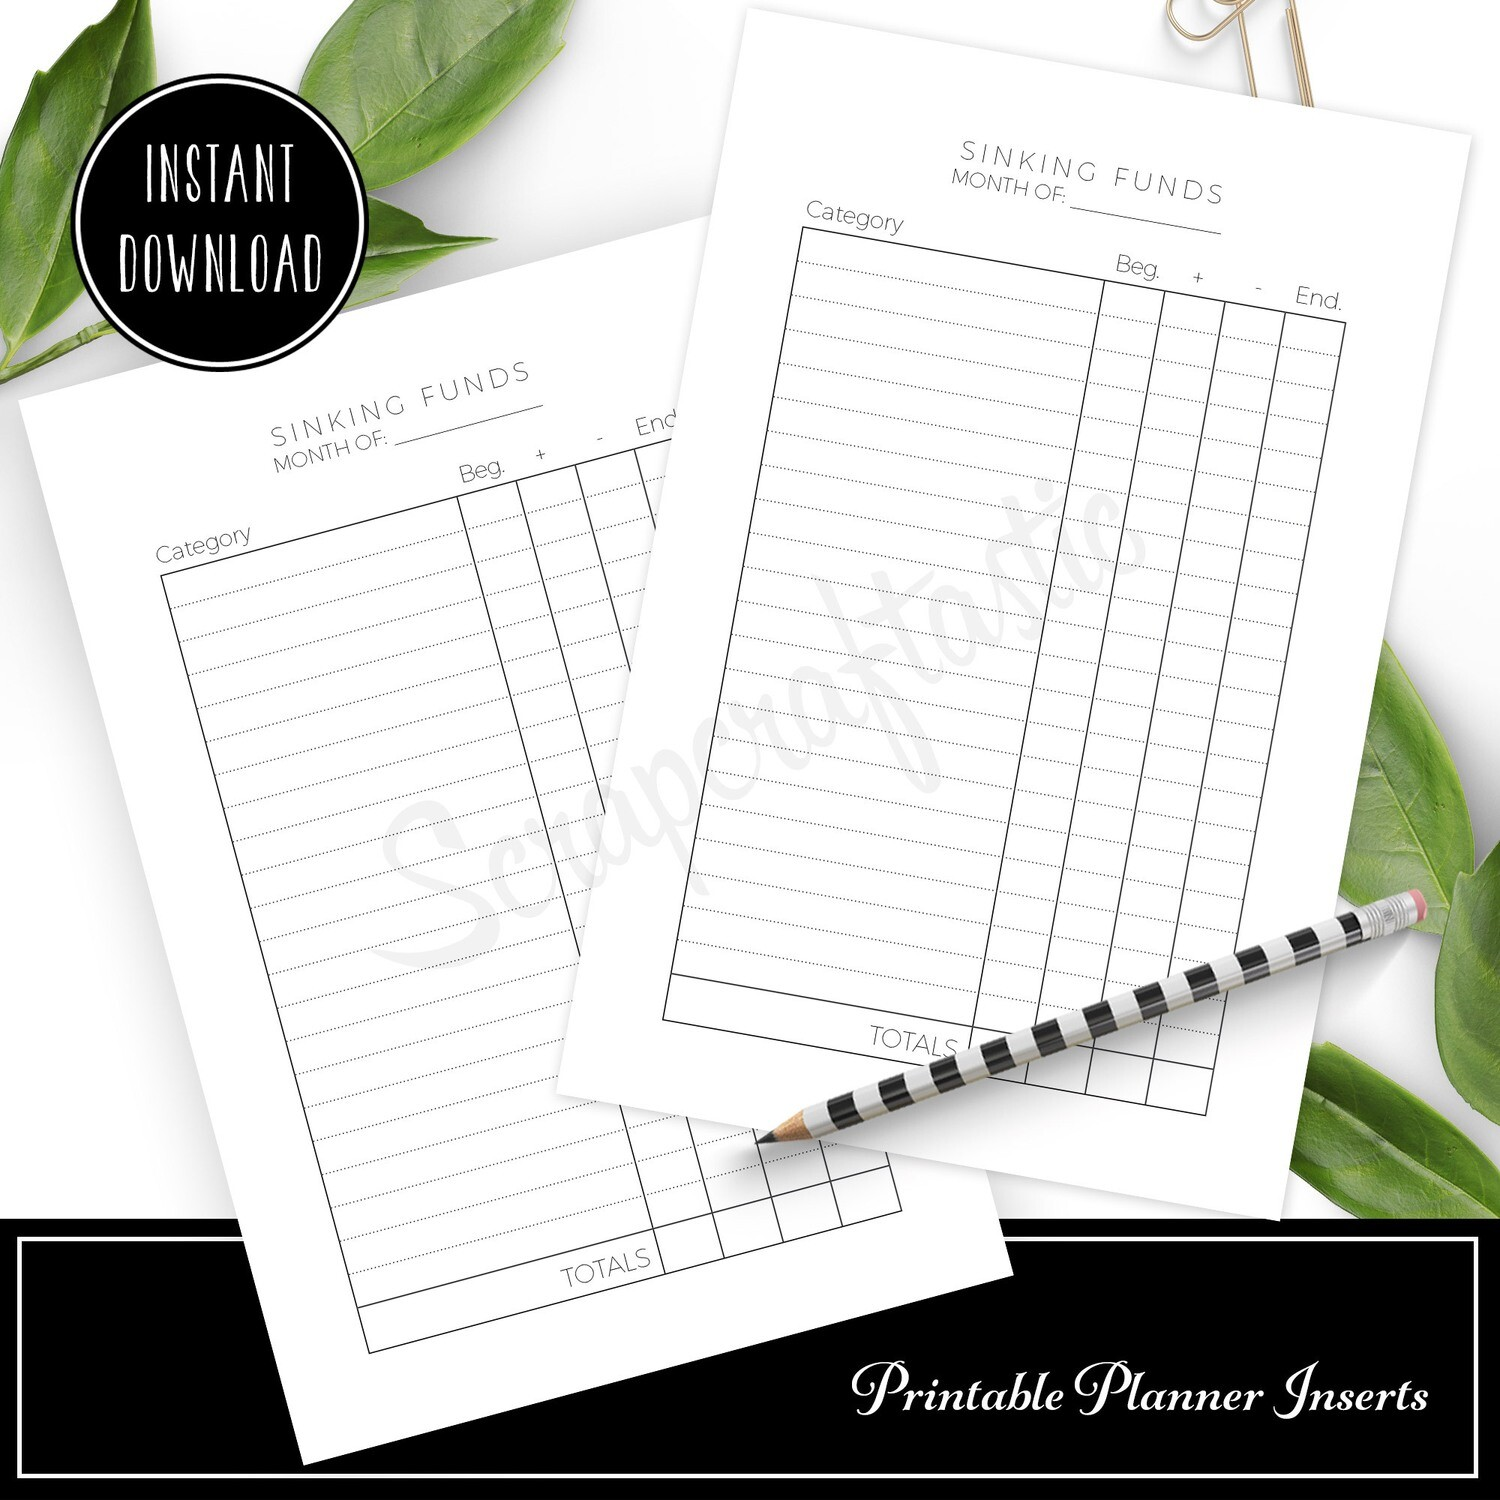 HALF LETTER A5 - Sinking Funds Budget Printable Planner Inserts